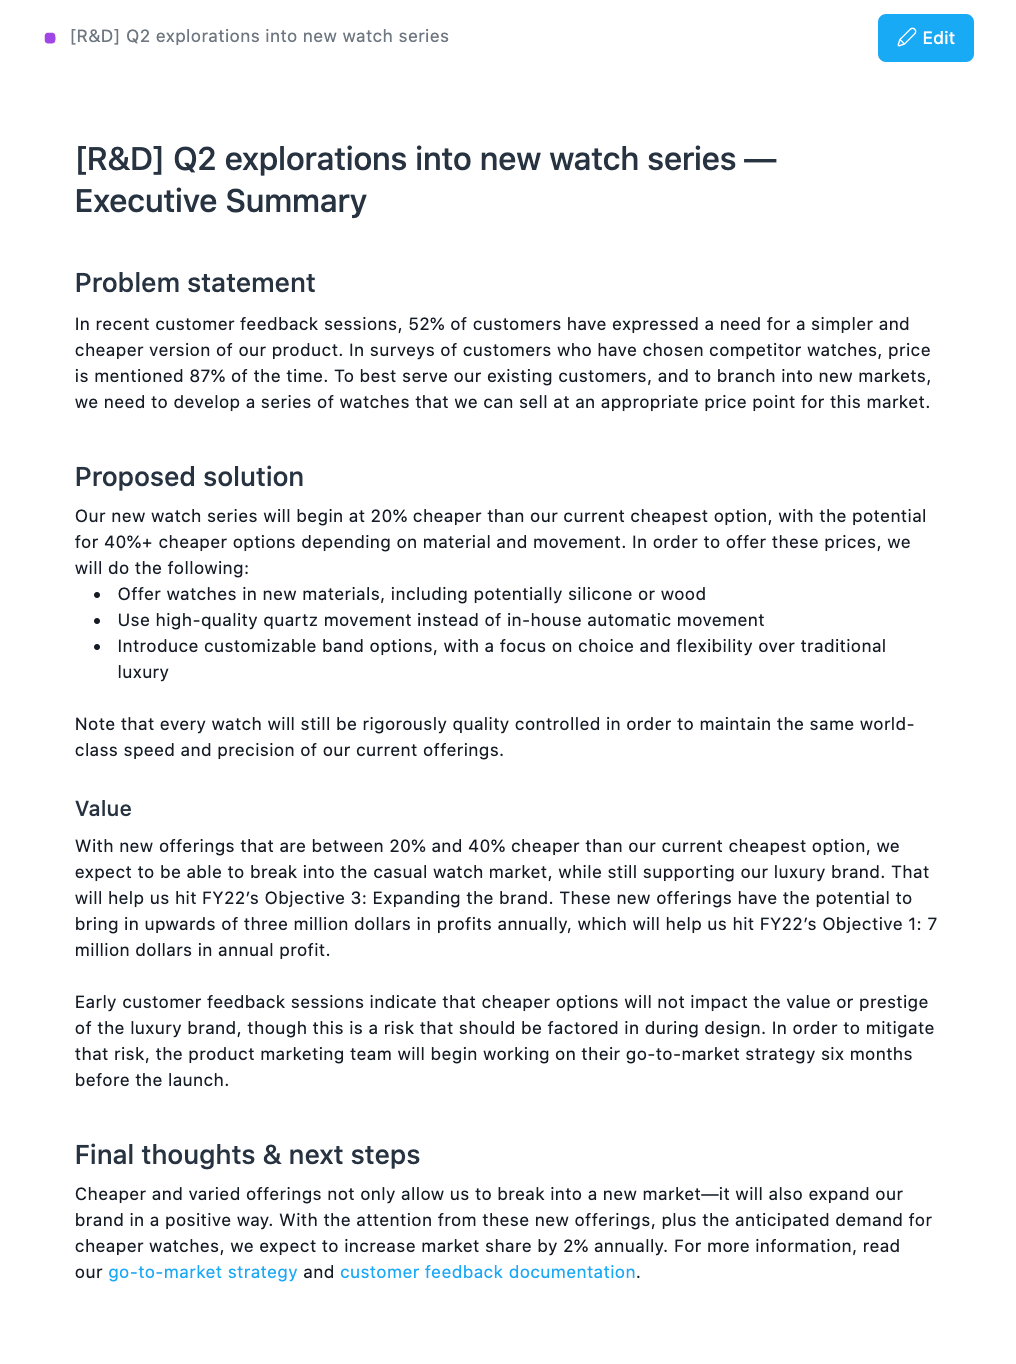 Example executive summary in Asana